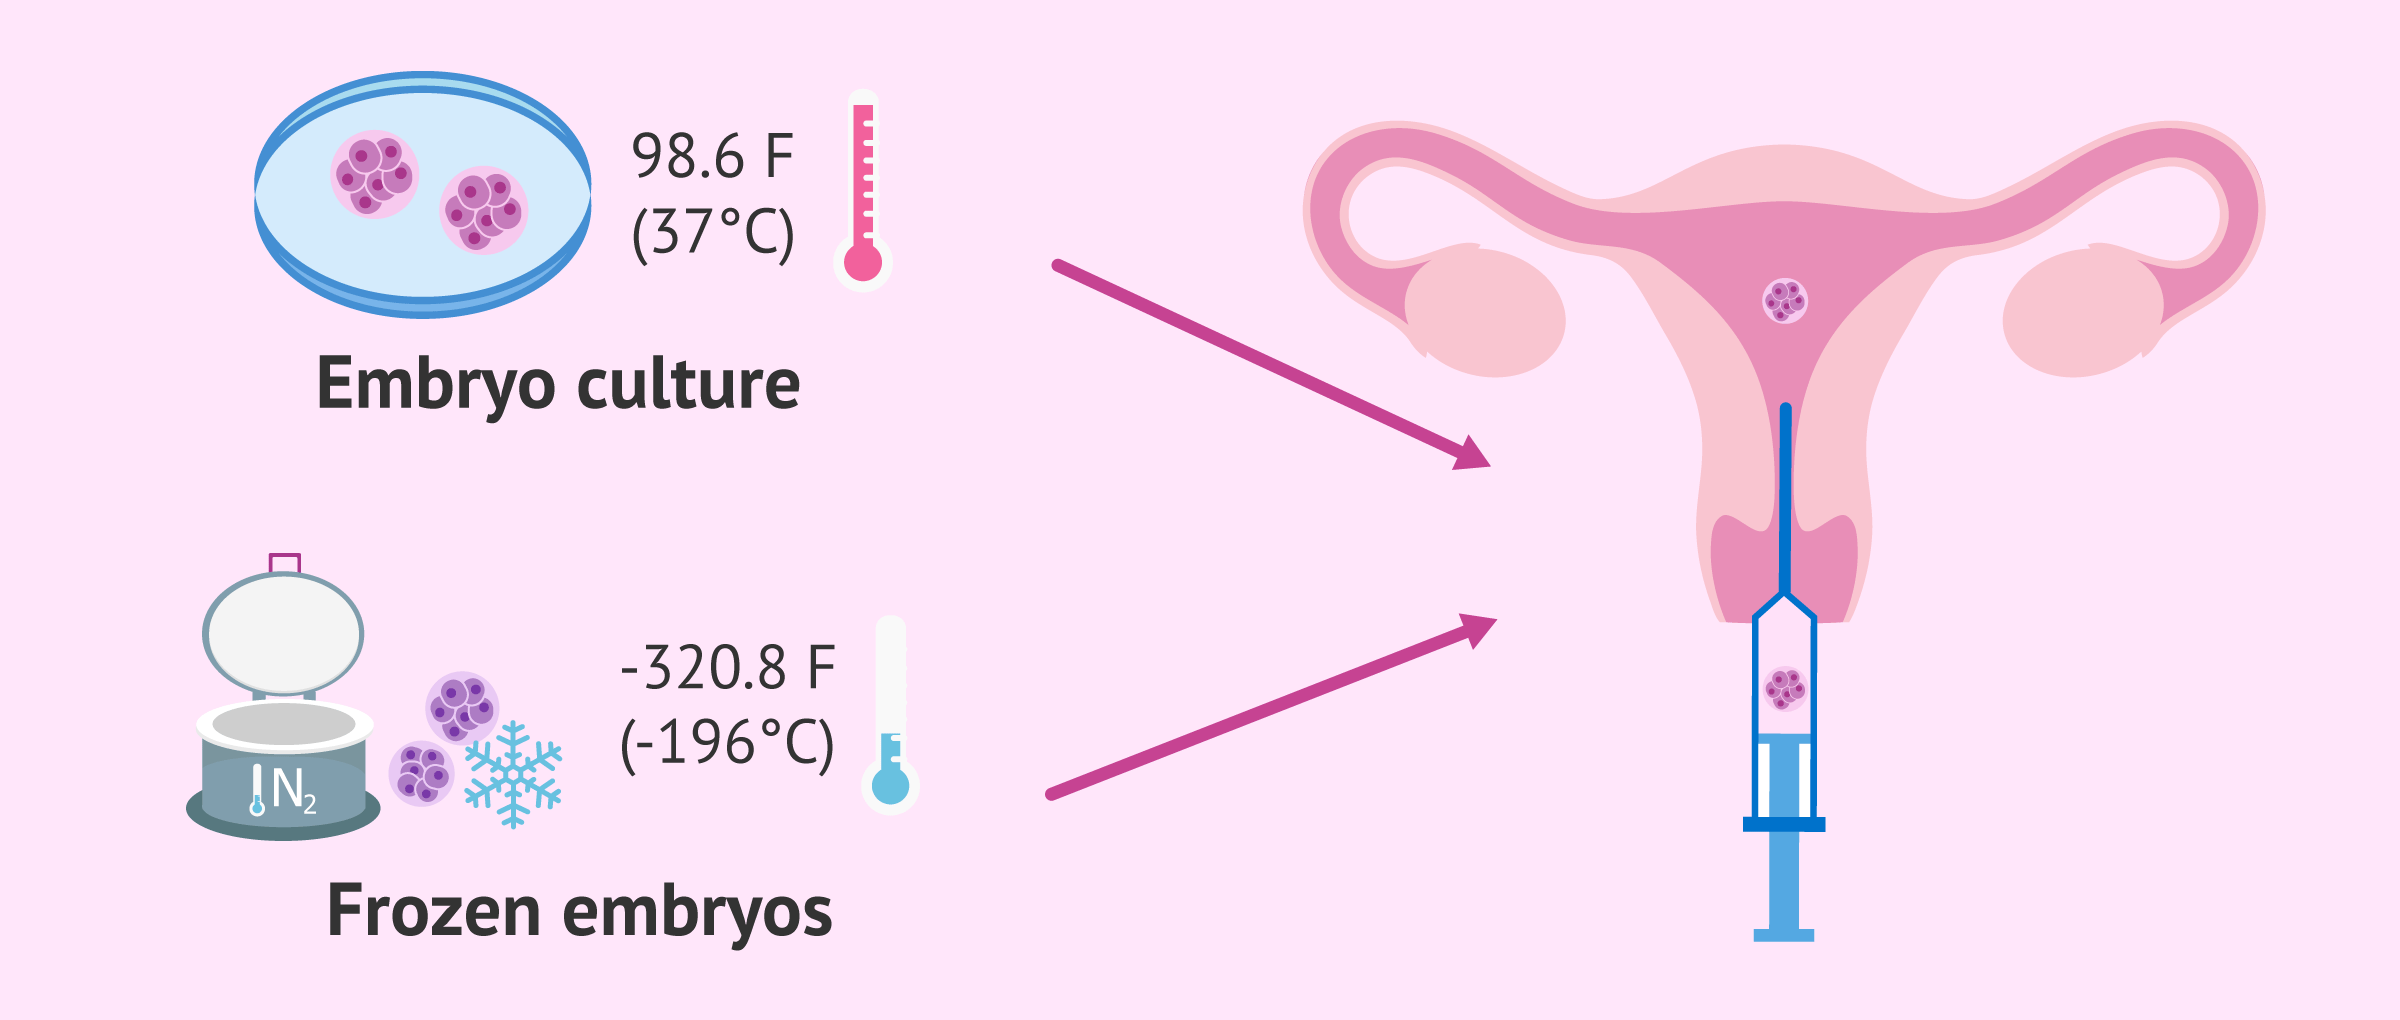 Embryo Transfer in Surrogacy